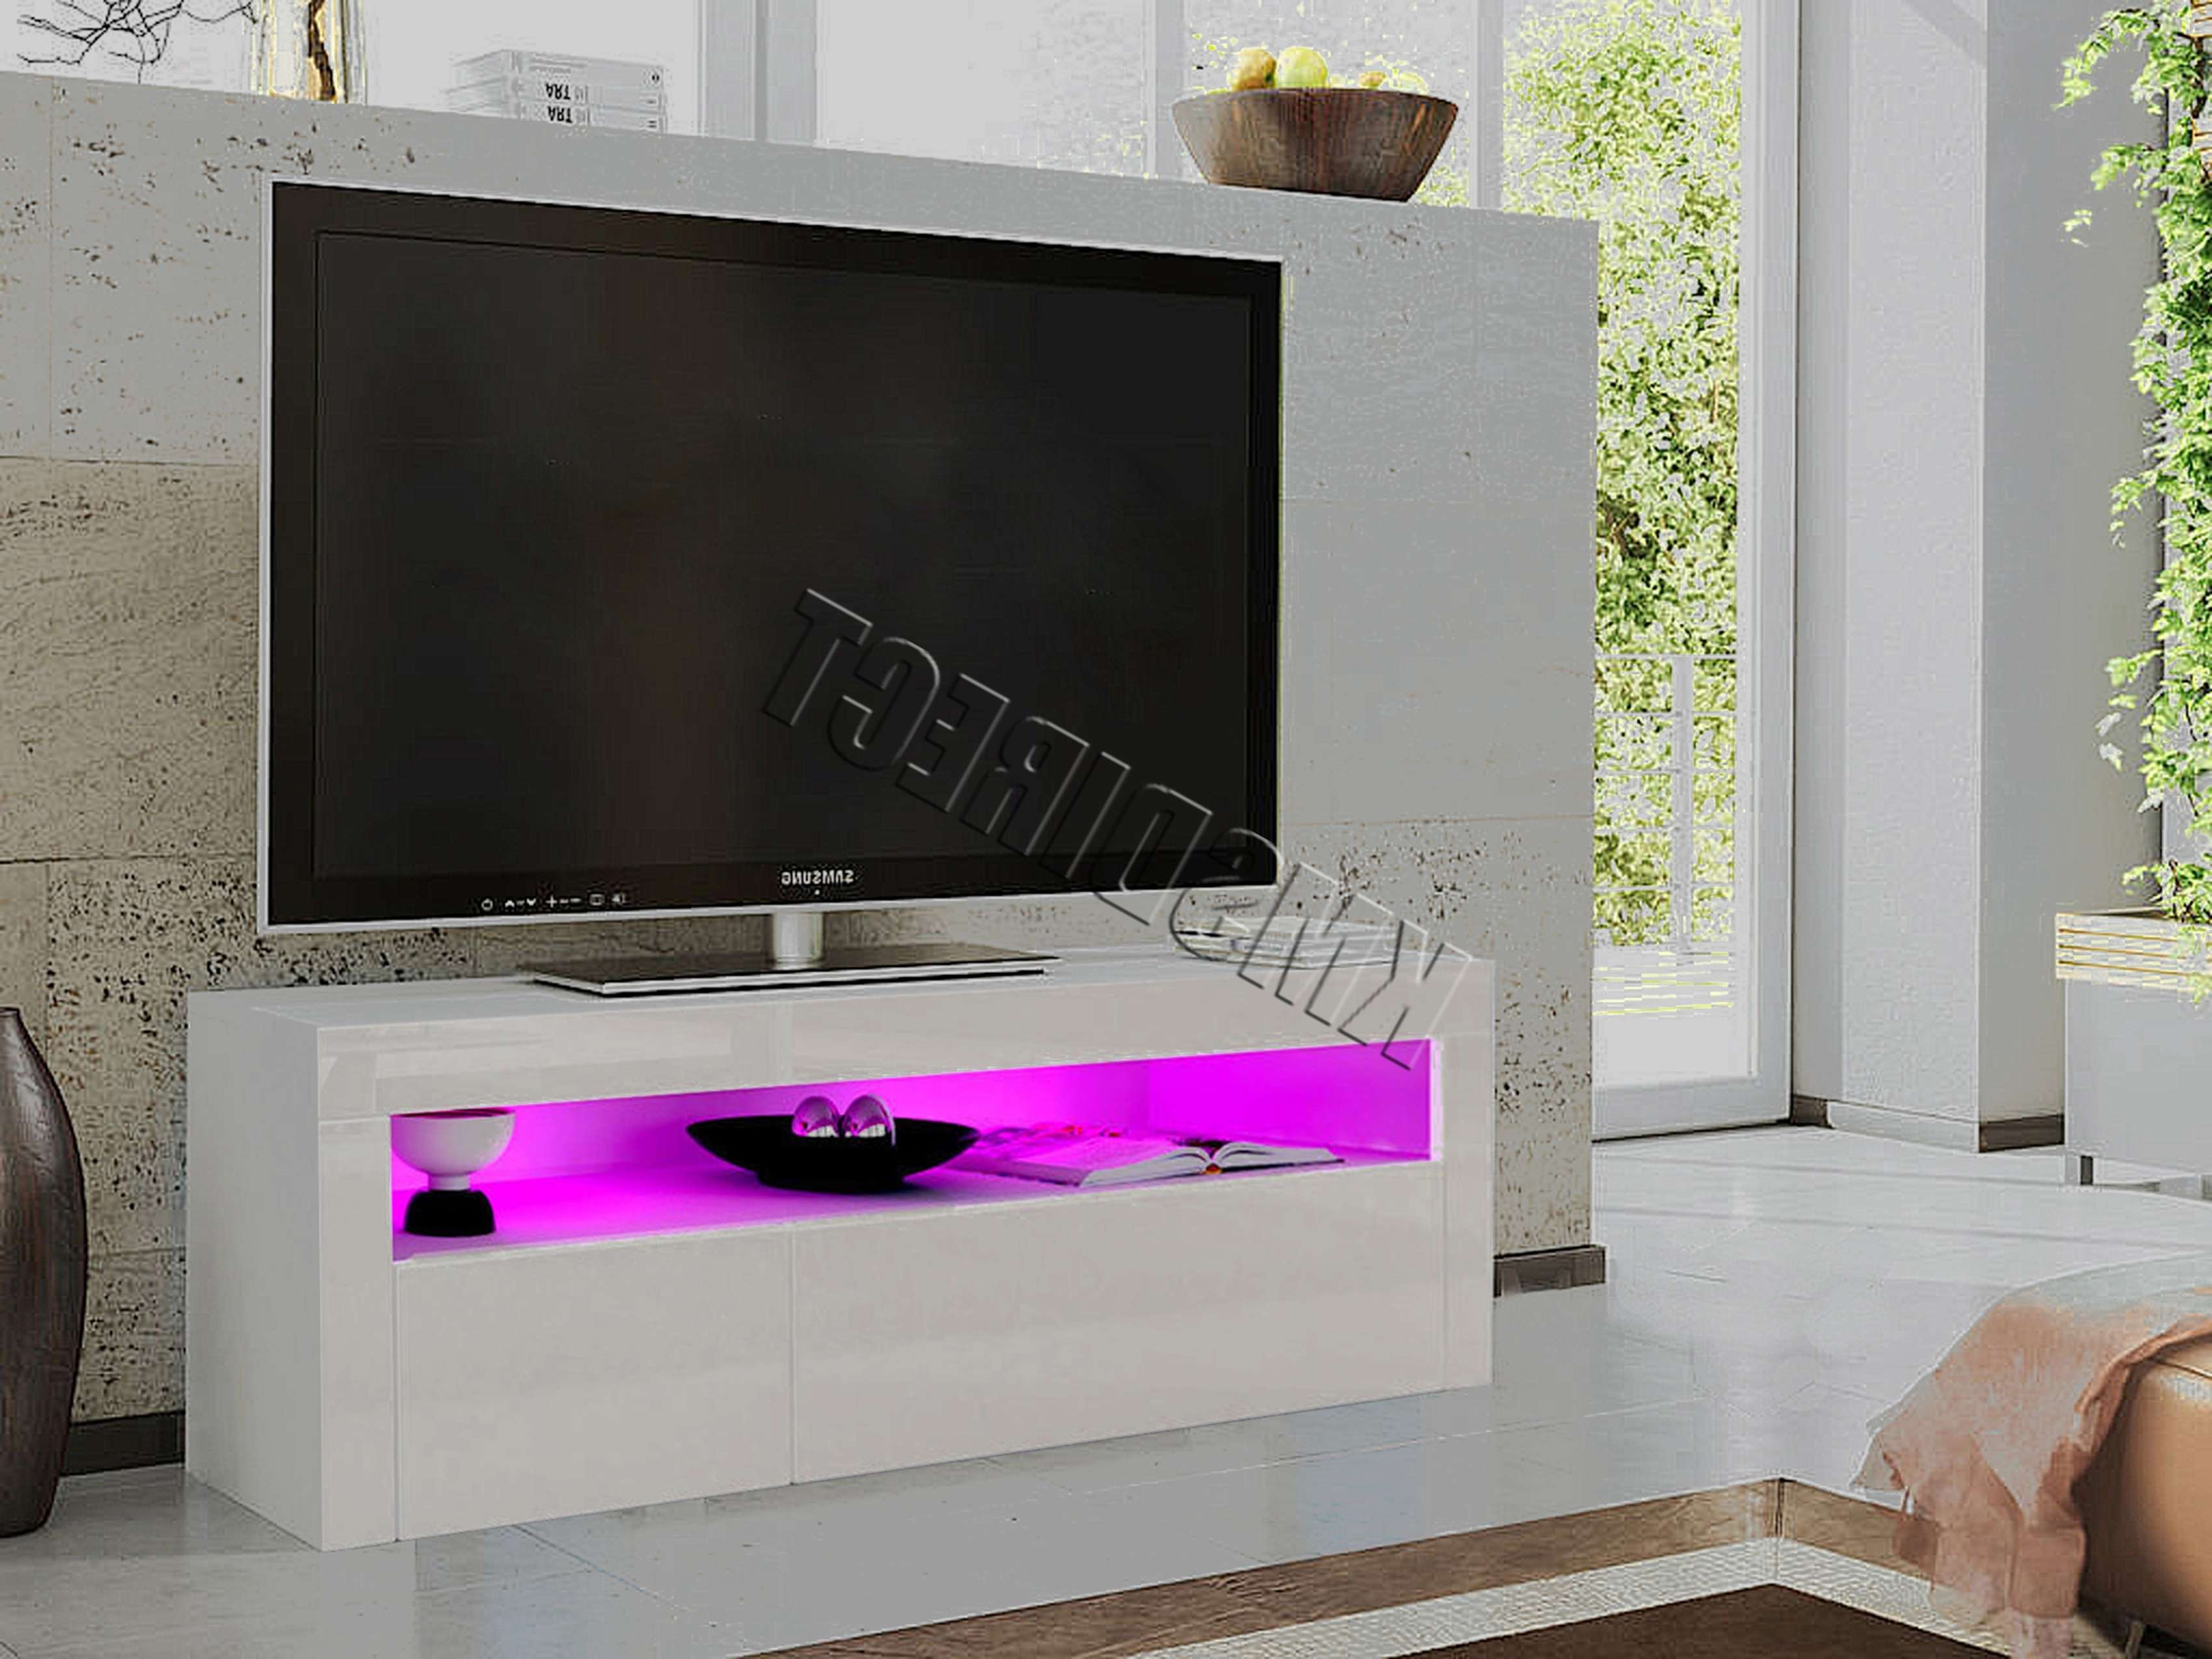 Foxhunter Modern High Gloss Matt Tv Cabinet Unit Stand White Rgb With Regard To White High Gloss Tv Stands (View 6 of 20)